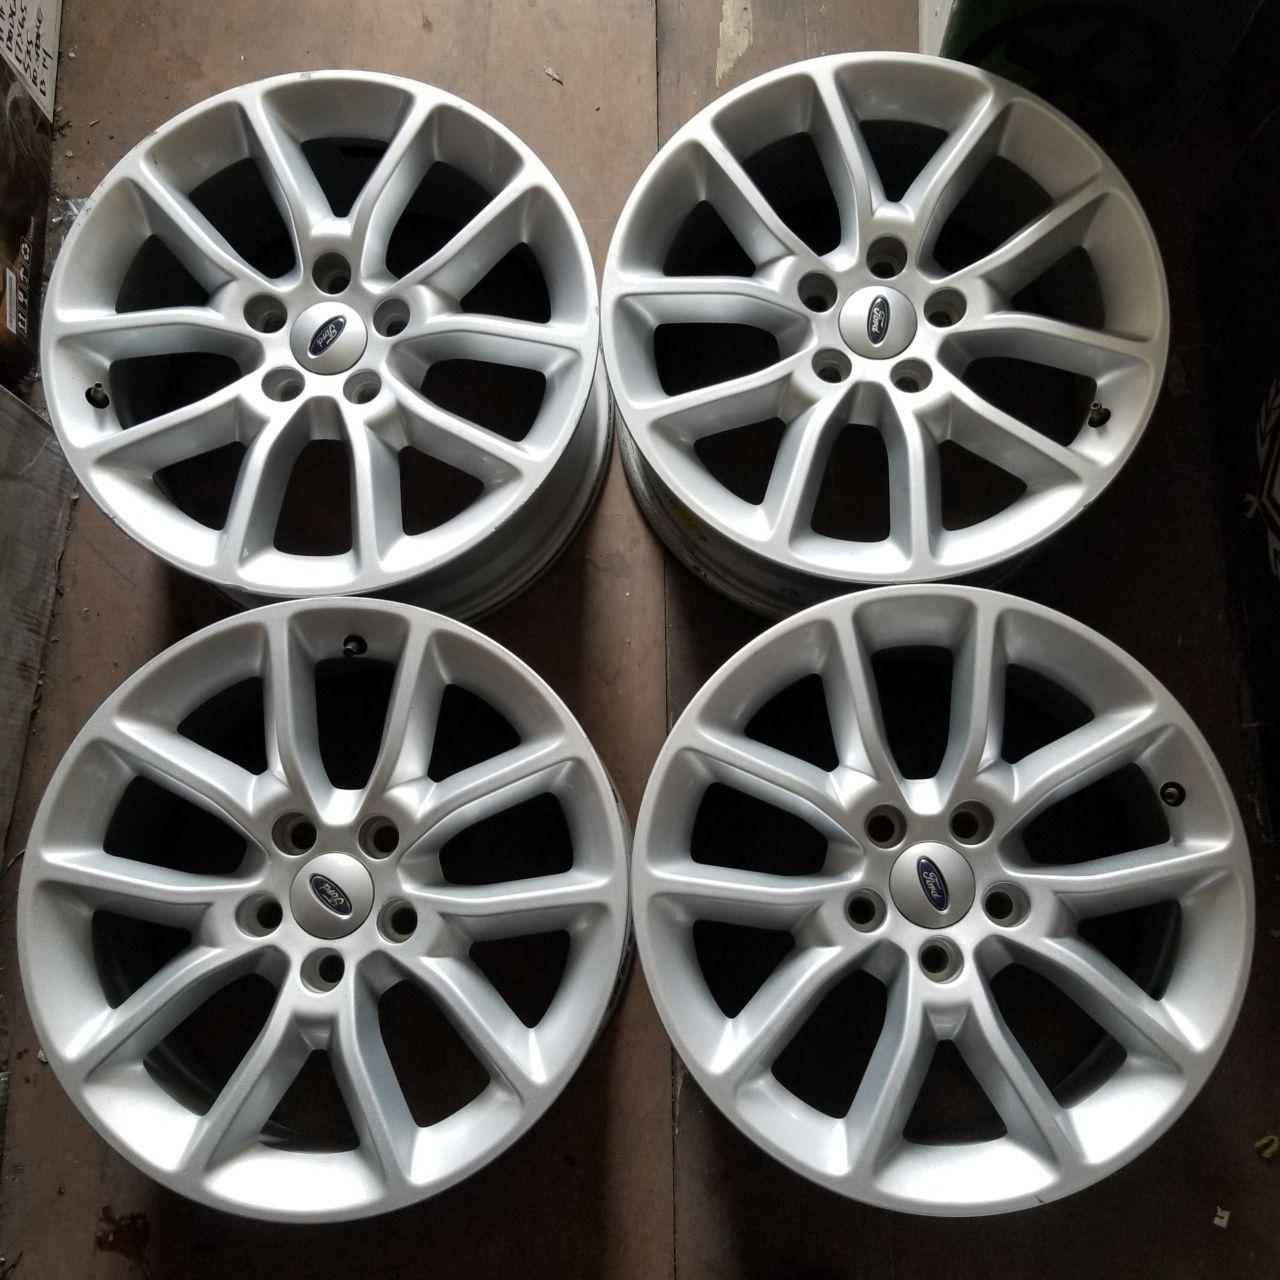 - OEM WHEELS - 2013-2015 FORD FLEX/EDGE/TAURUS 17x7.5 5 SPOKE Hollander #3920 /  USED